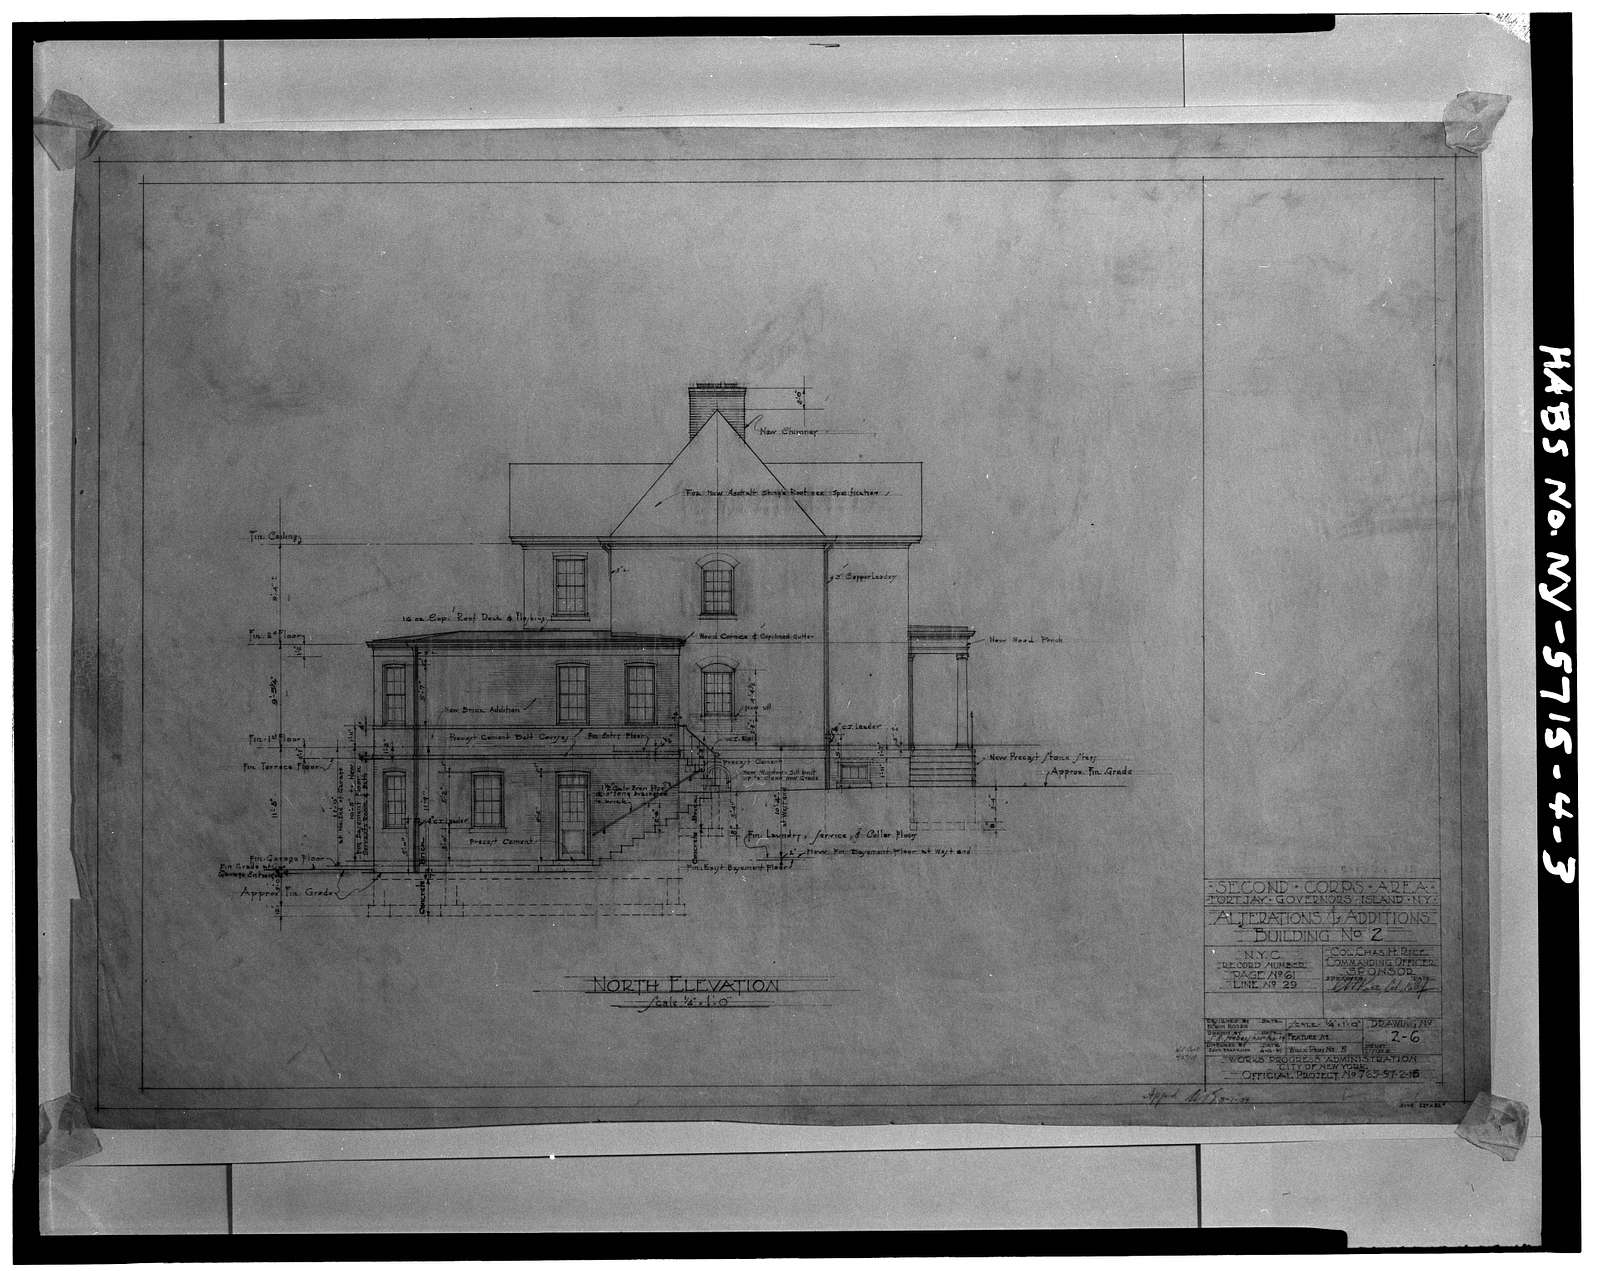 Governors Island, Building No. 2, New York Harbor, Nolan Park near Barry & Andes Roads, New York, New York County, NY